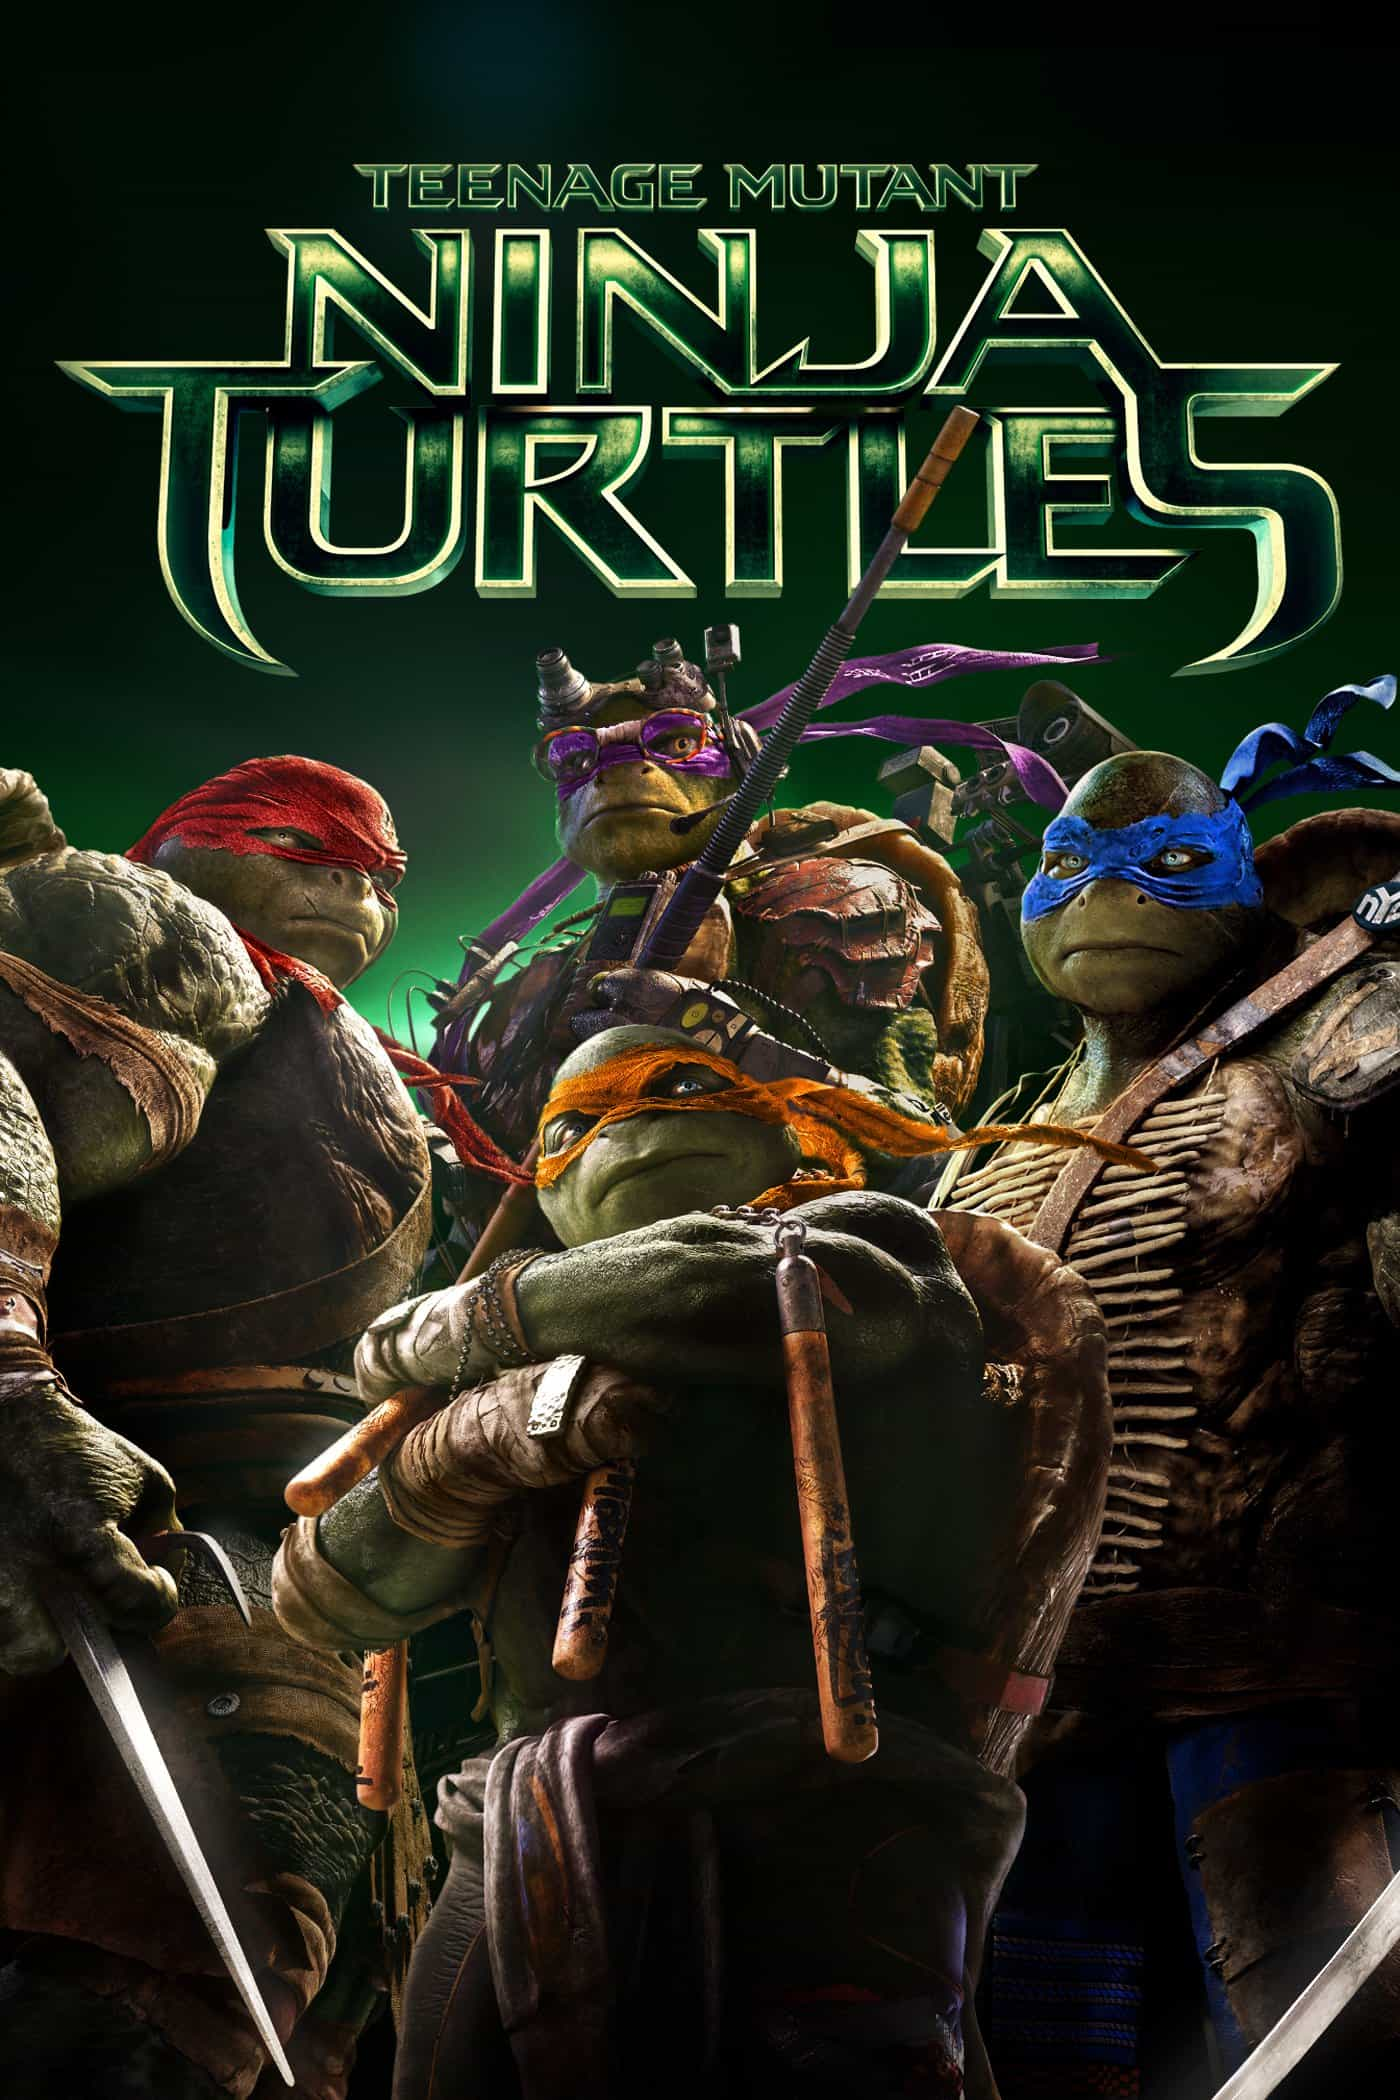 Teenage Mutant Ninja Turtles, 2014